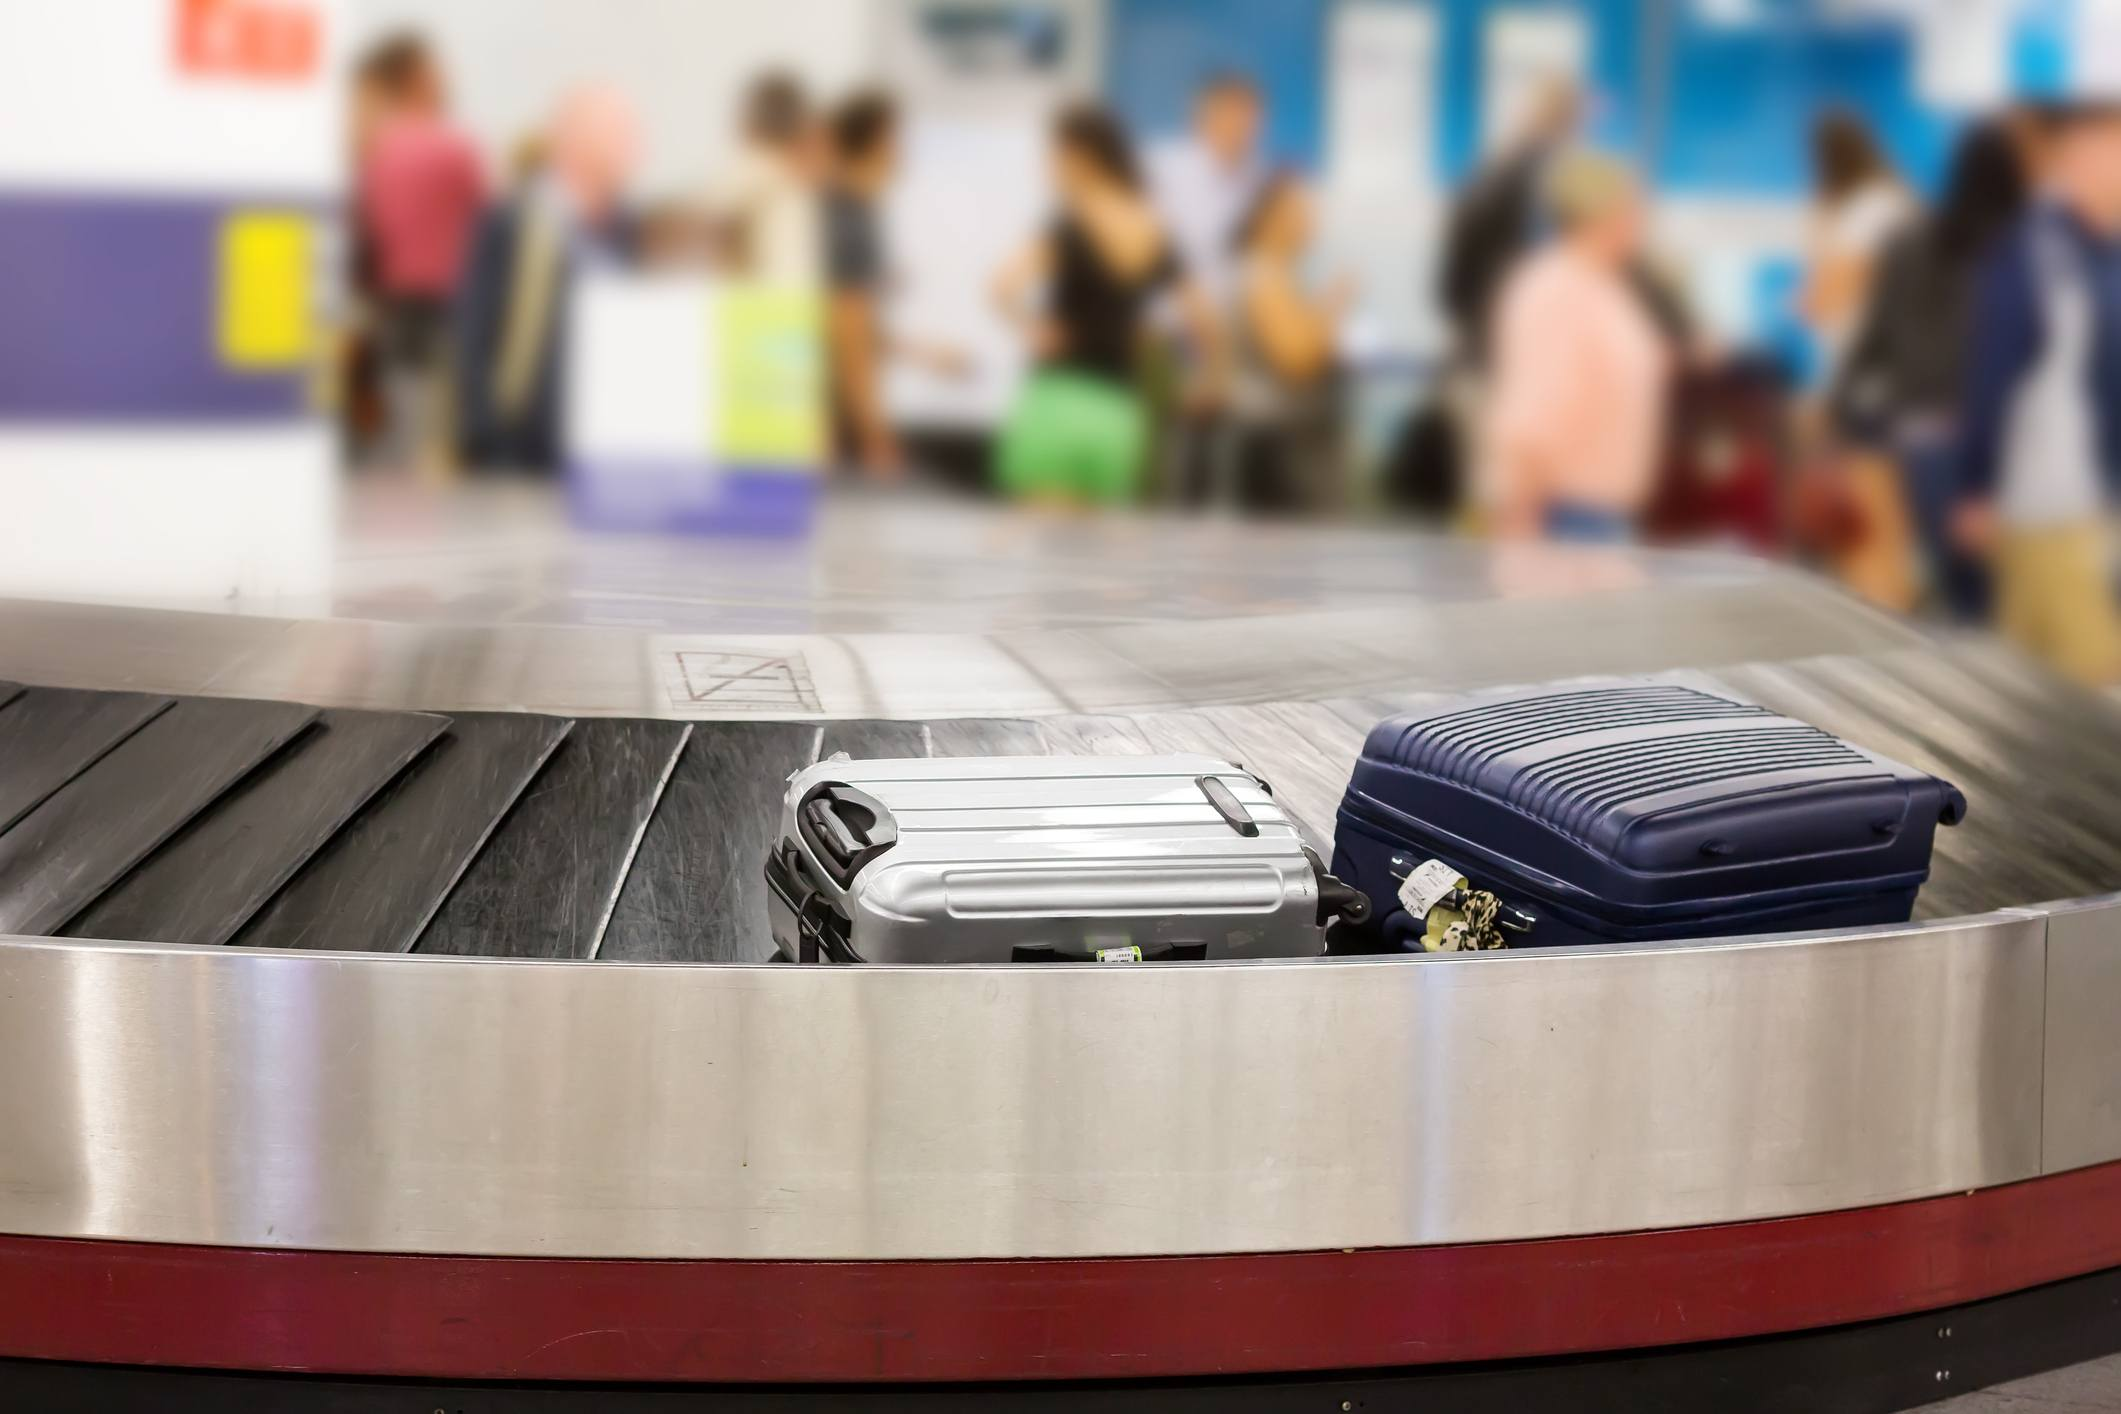 Two suitcases on the luggage belt in the airport